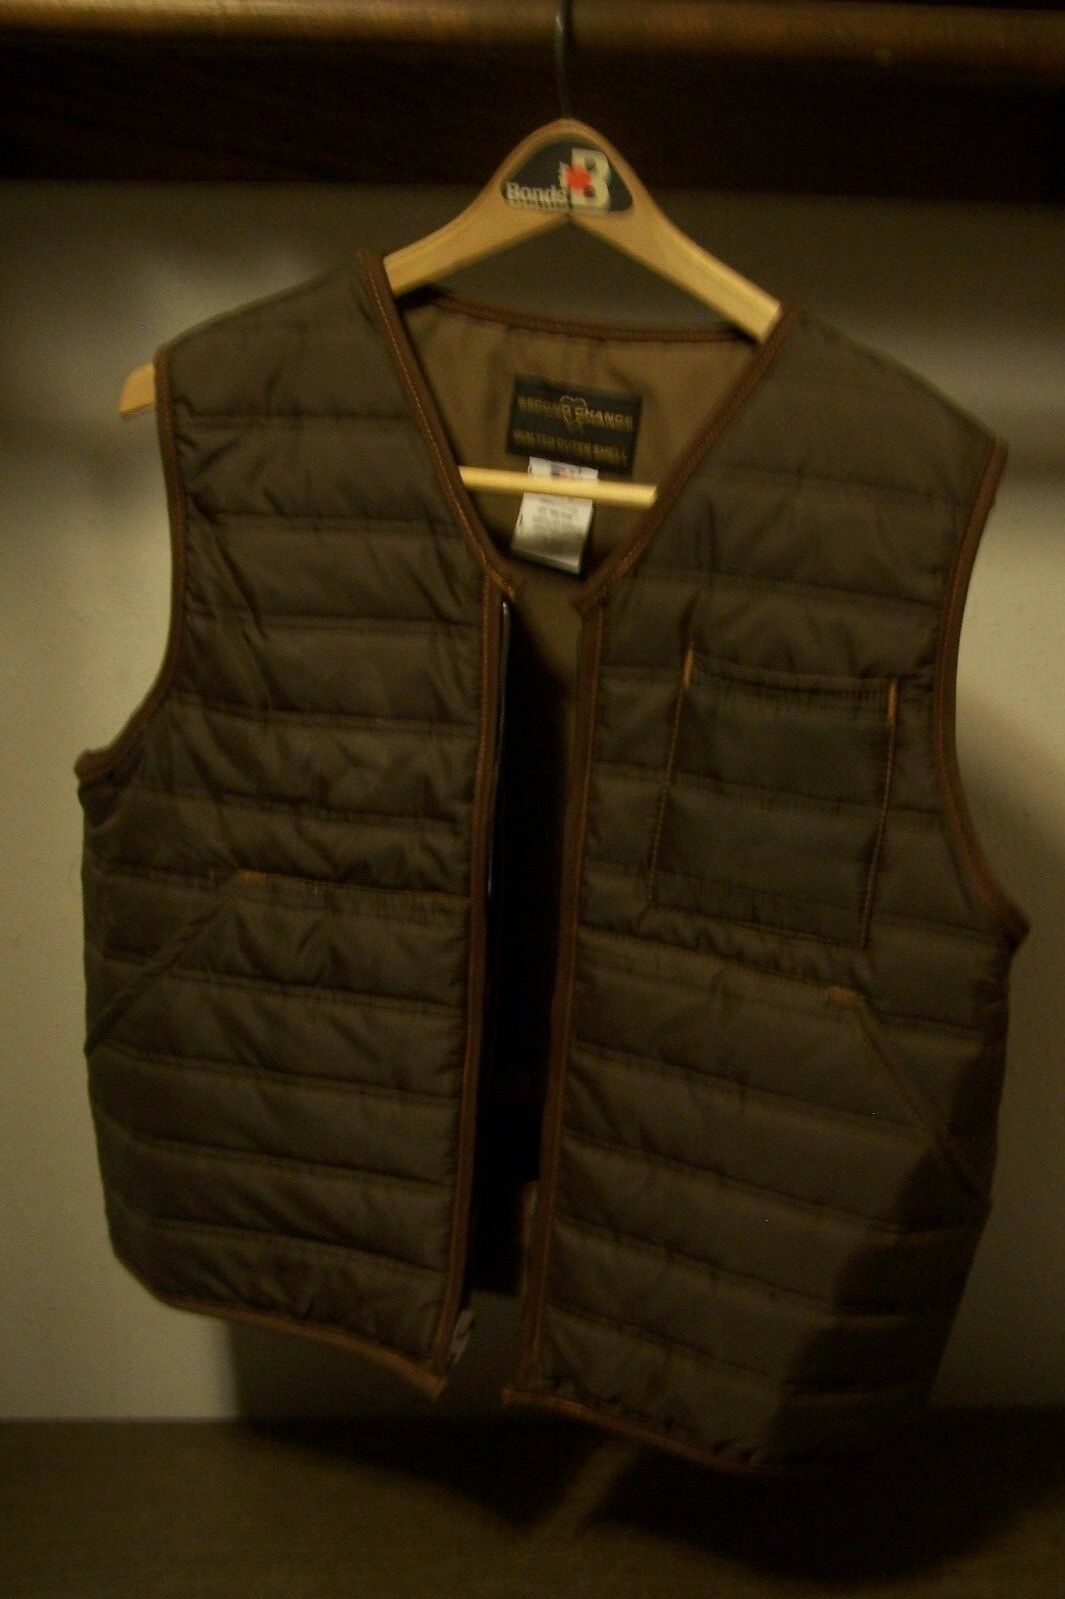 Second Chance quilted shell vest carrier        updated information 10 11 187  cheapest price